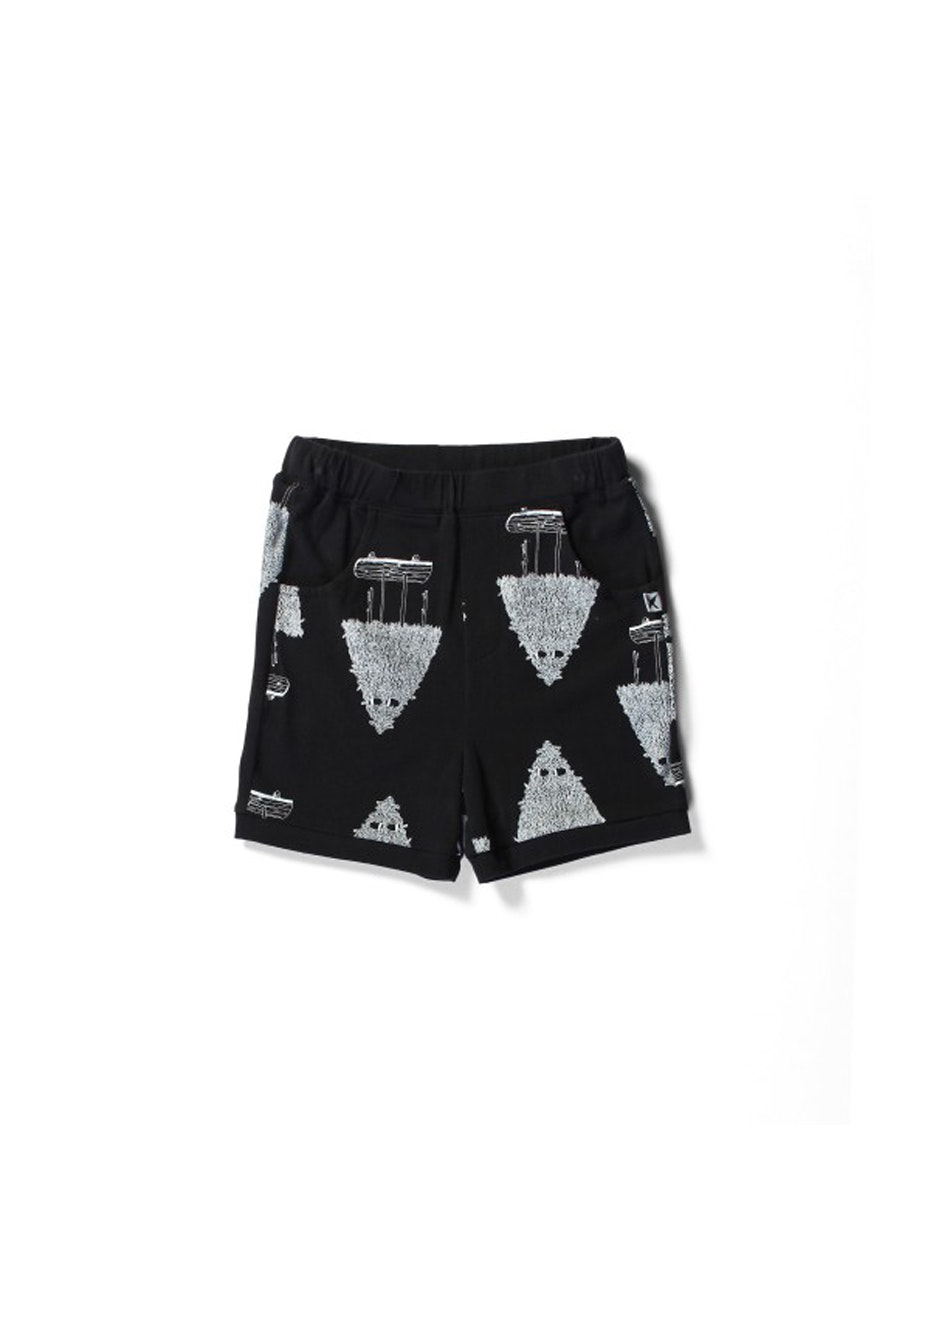 Minti - Skate Trees - Eddie Short - Boys - Black